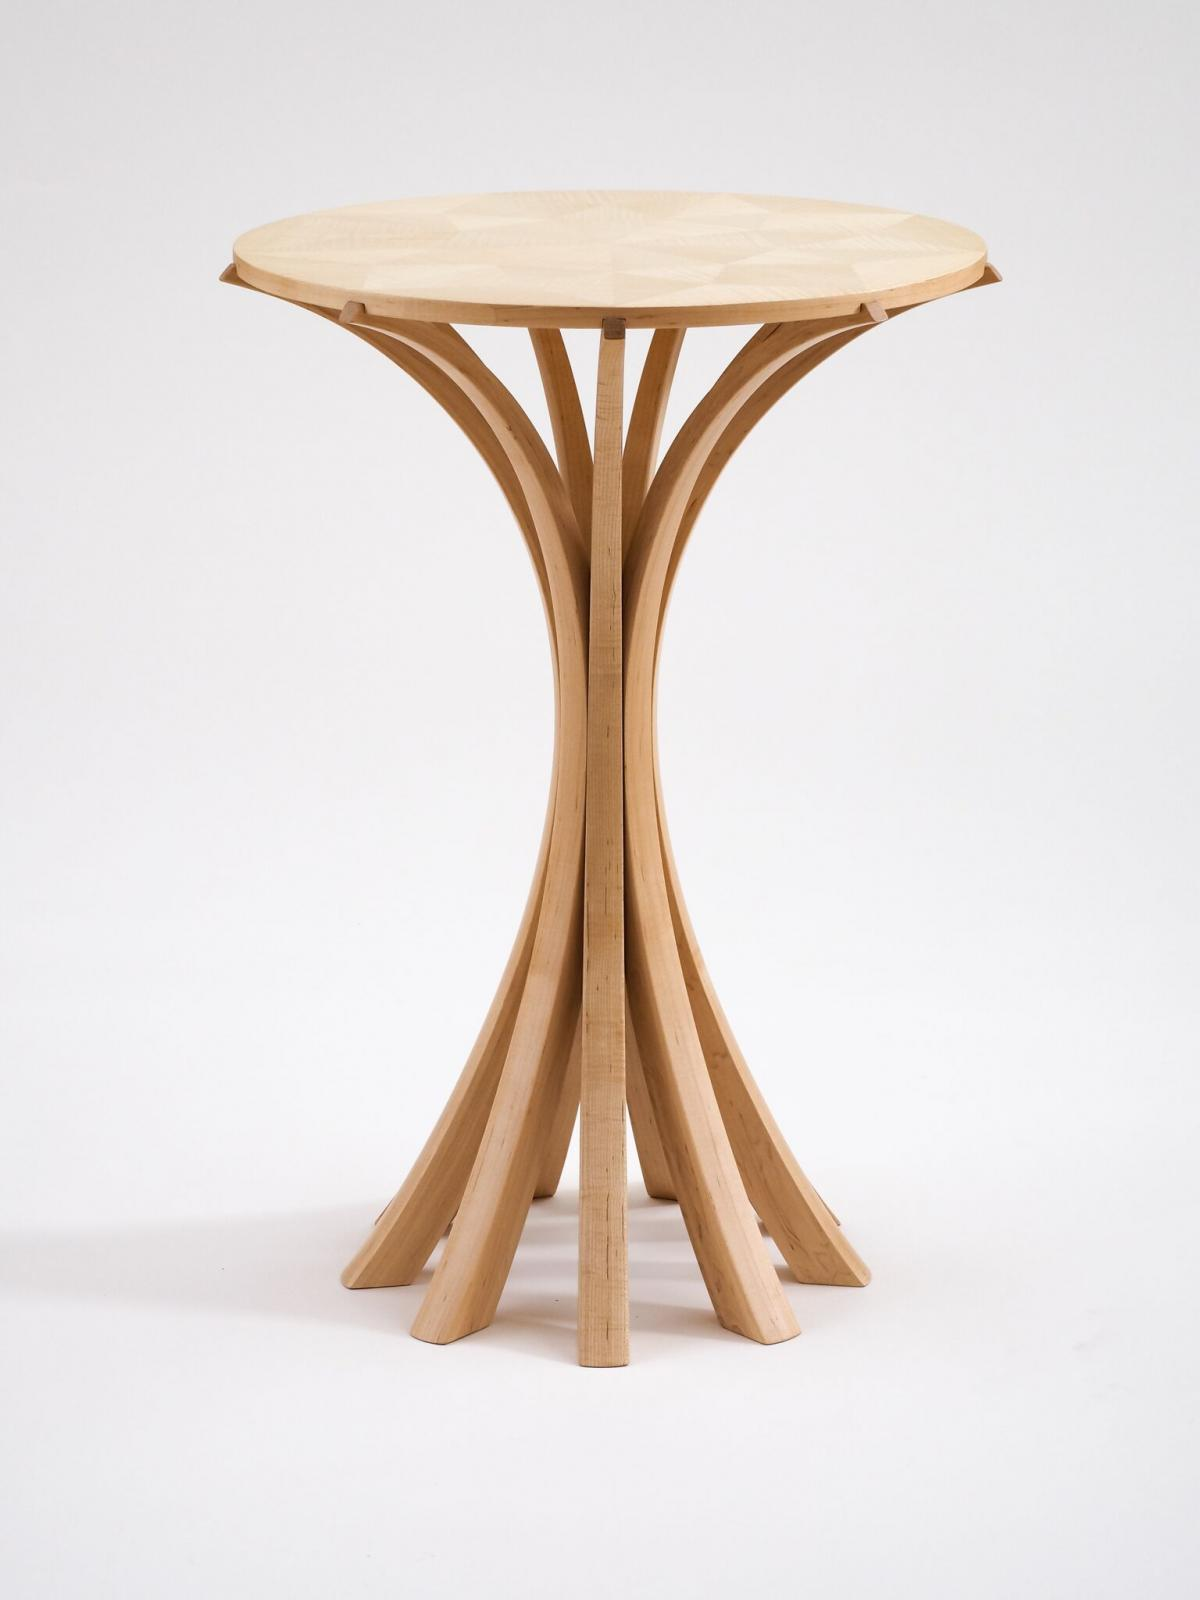 The Occasional Table by Joe Brown